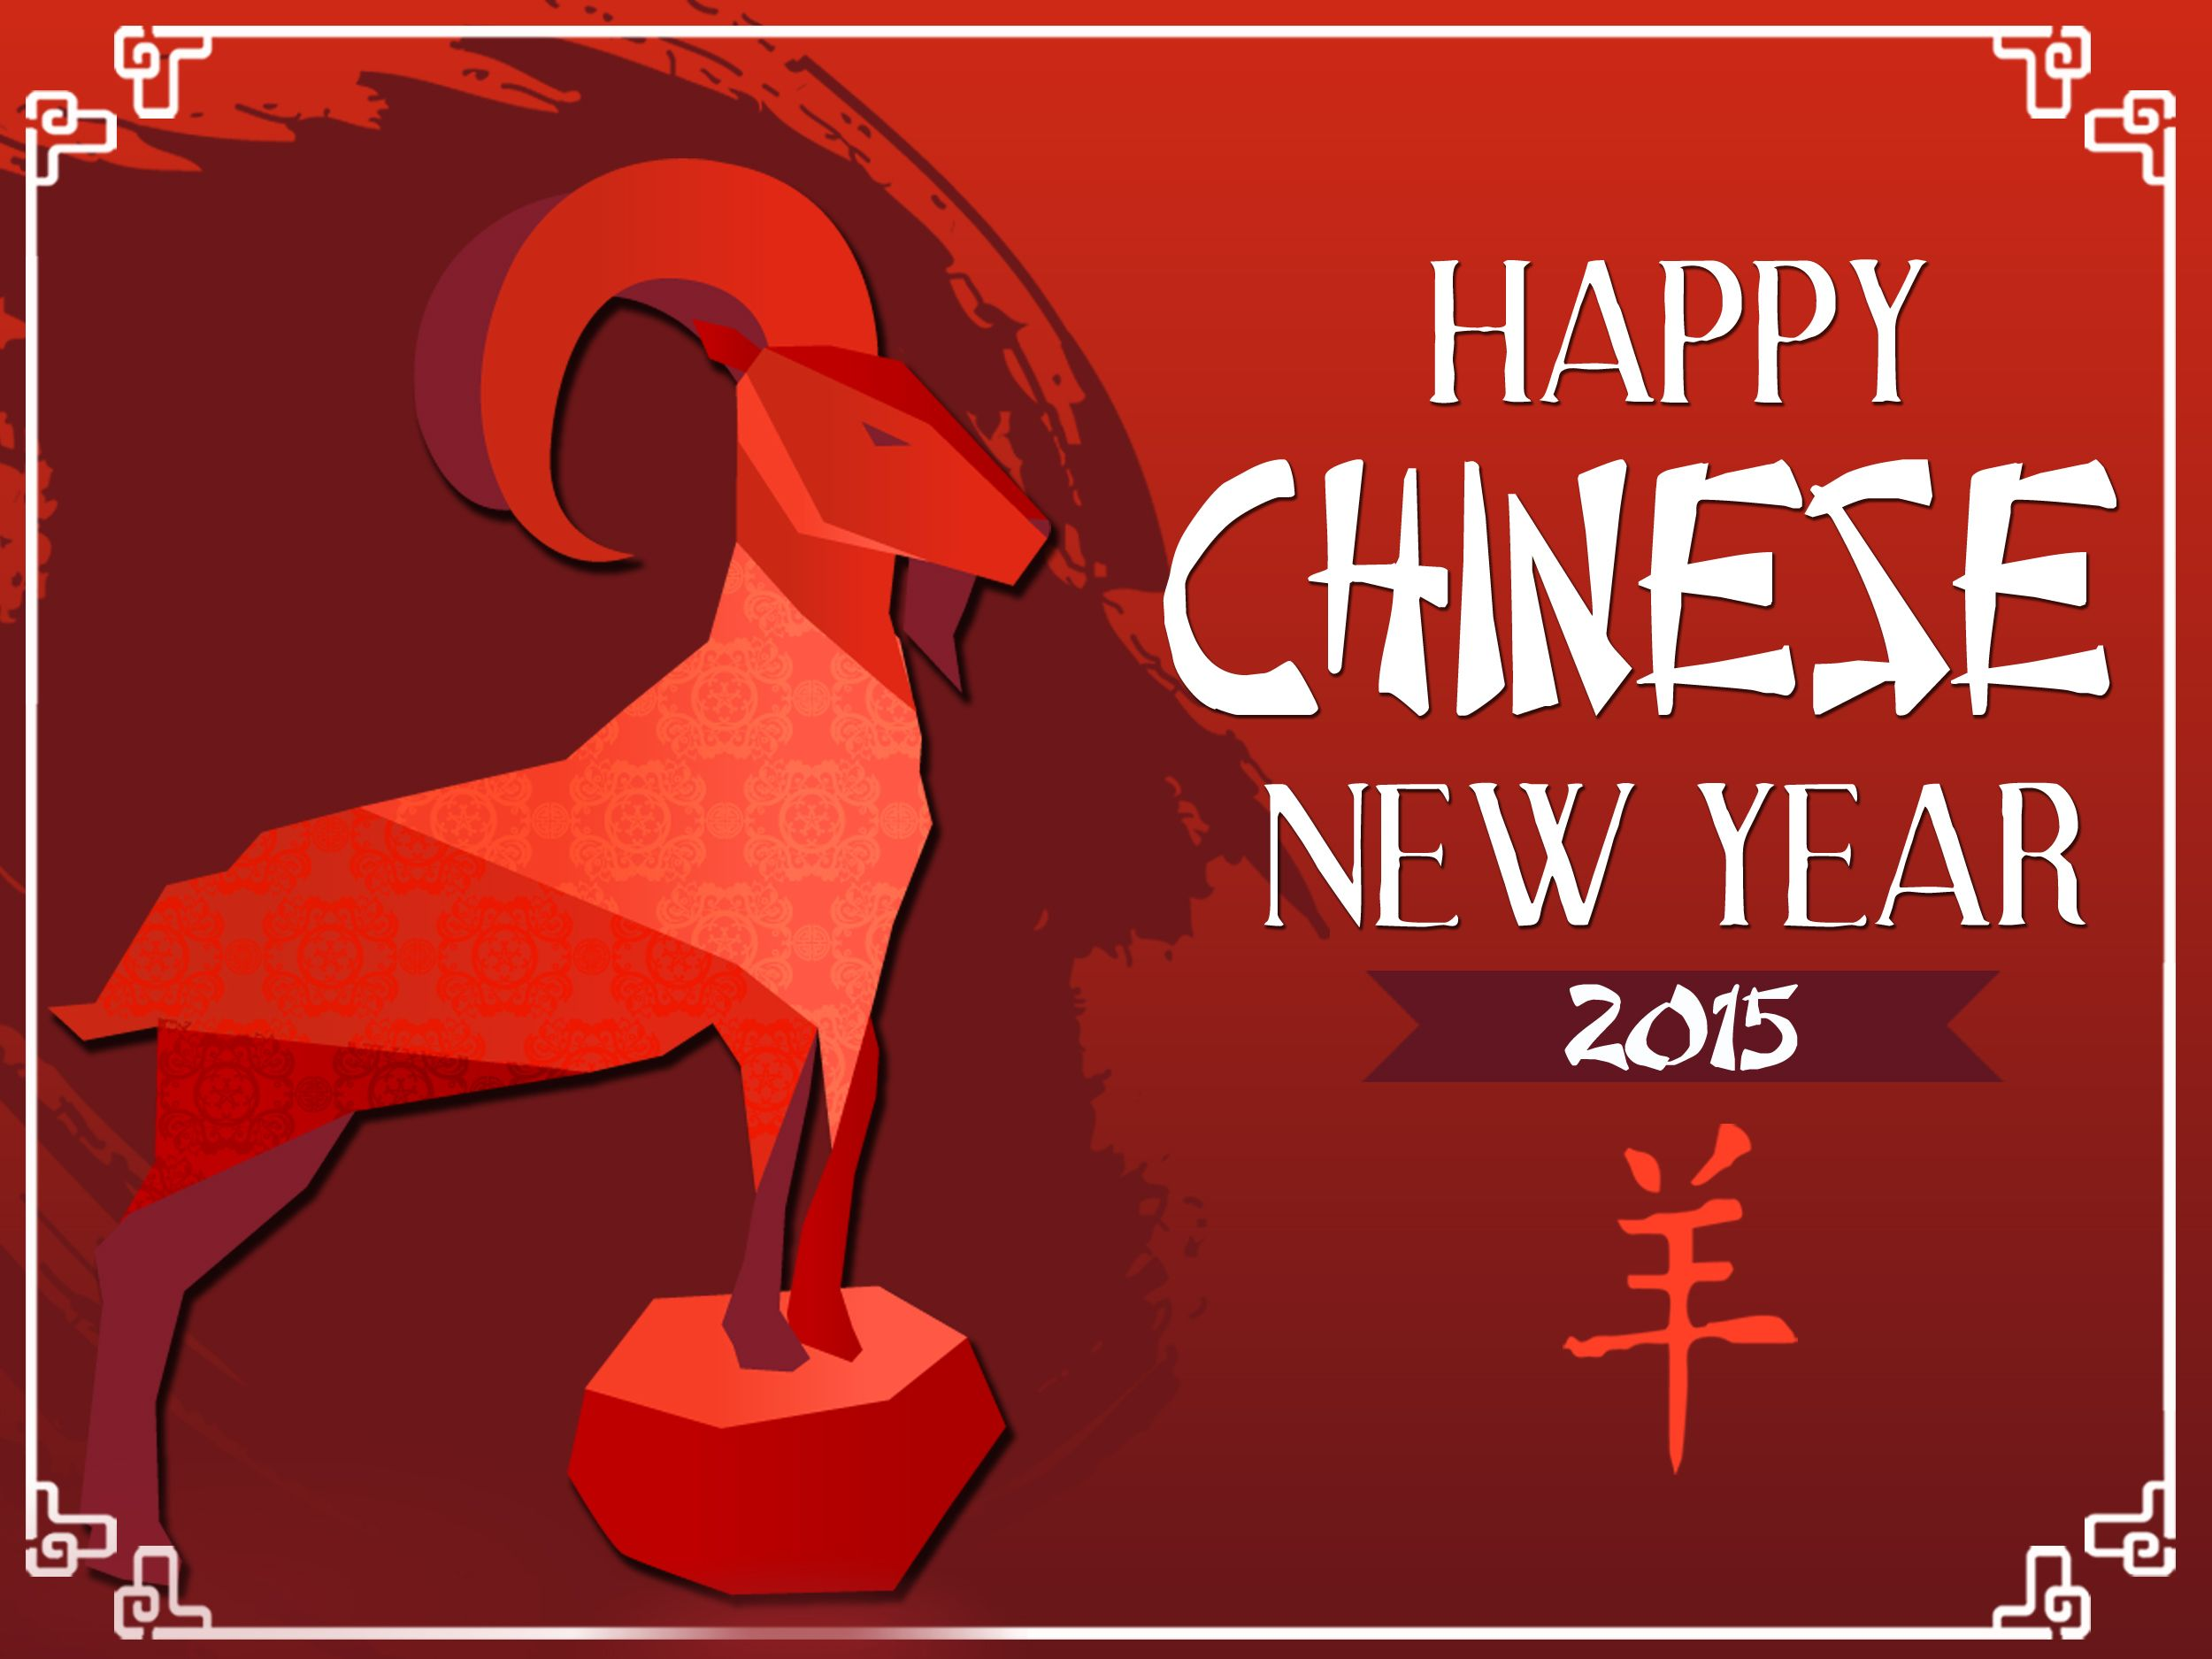 Wishing You A Happy Chinese New Year Did You Know That A